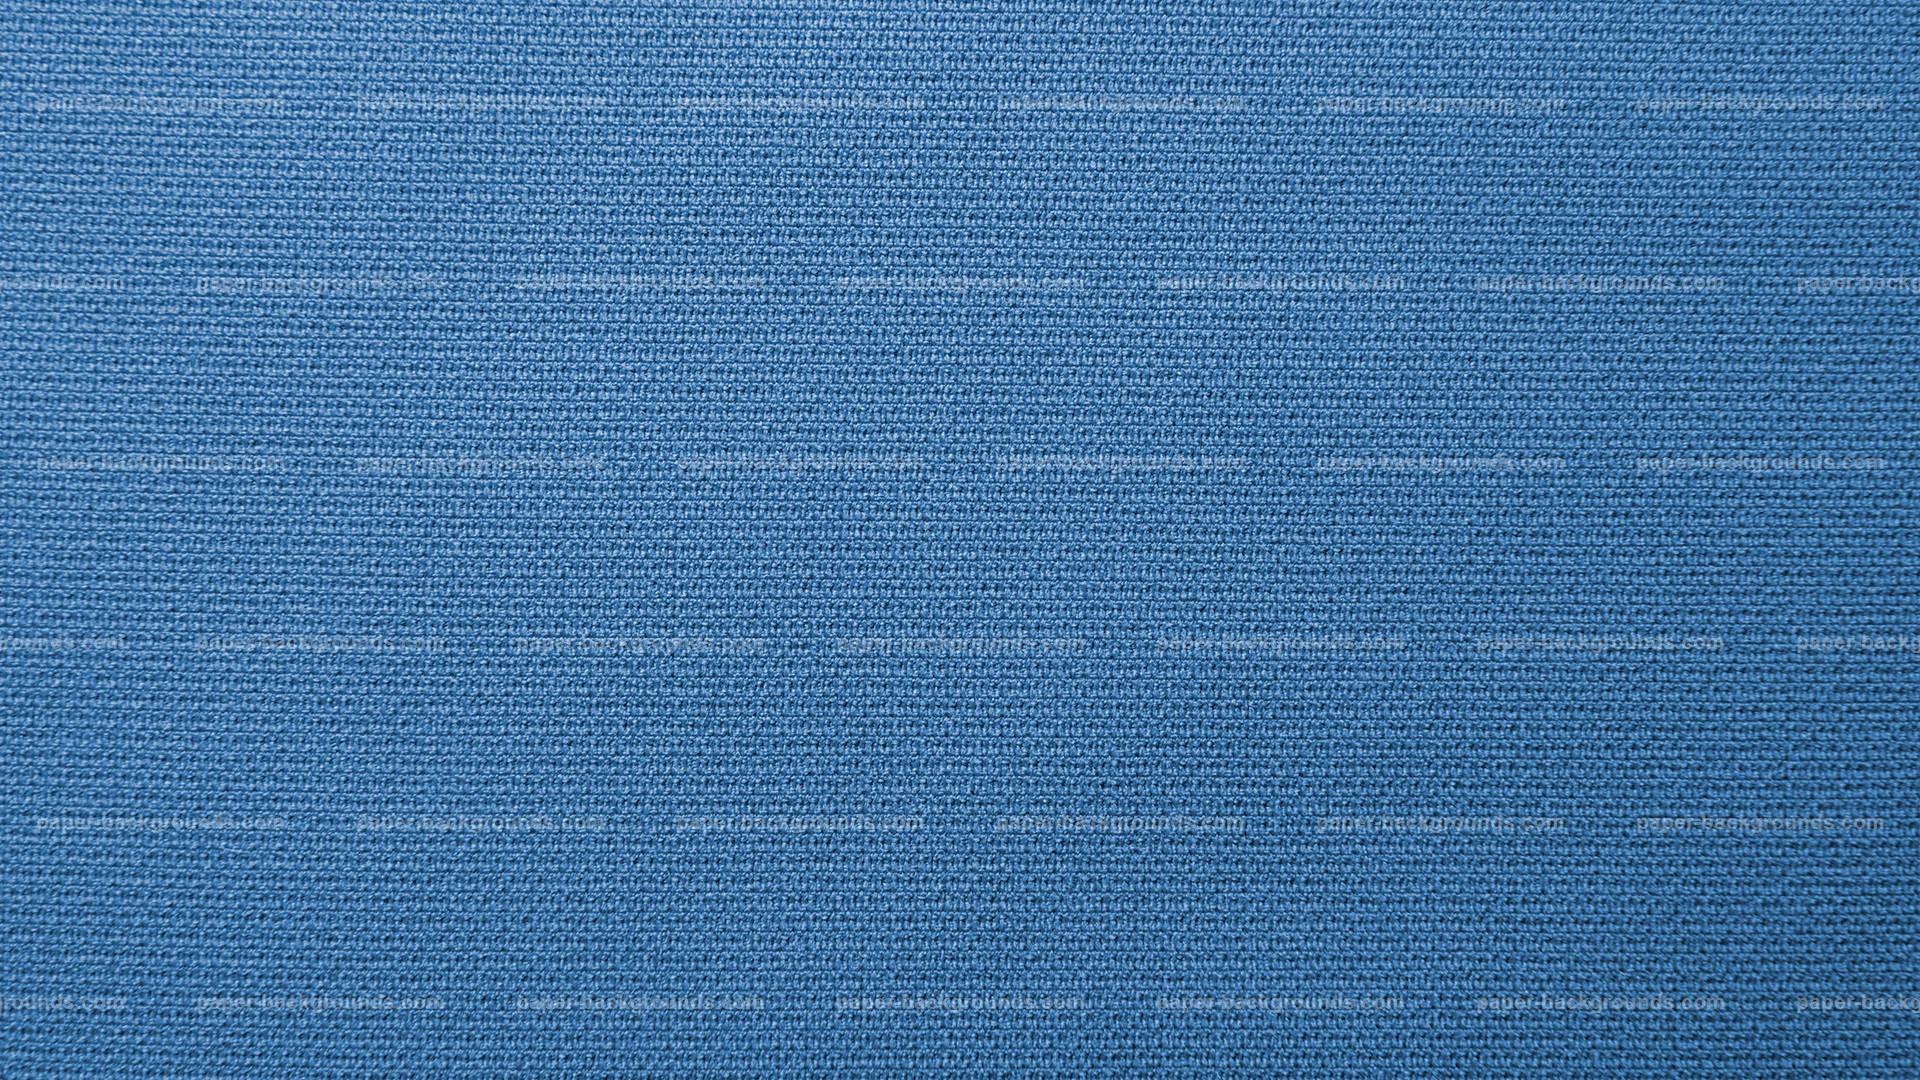 Clean Blue Fabric Texture HD